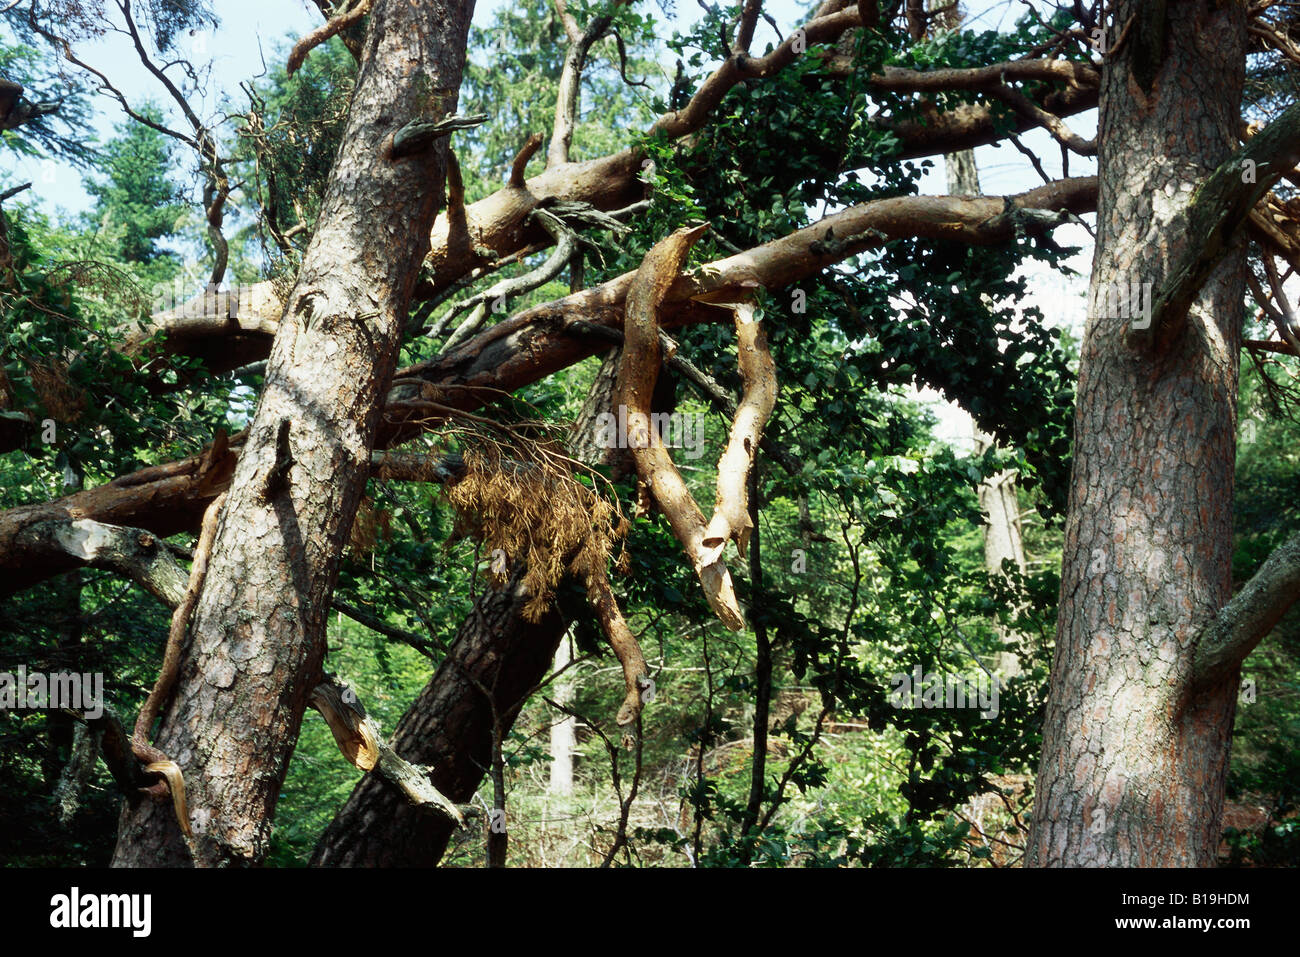 Fallen trees and broken branches in woods after storm - Stock Image